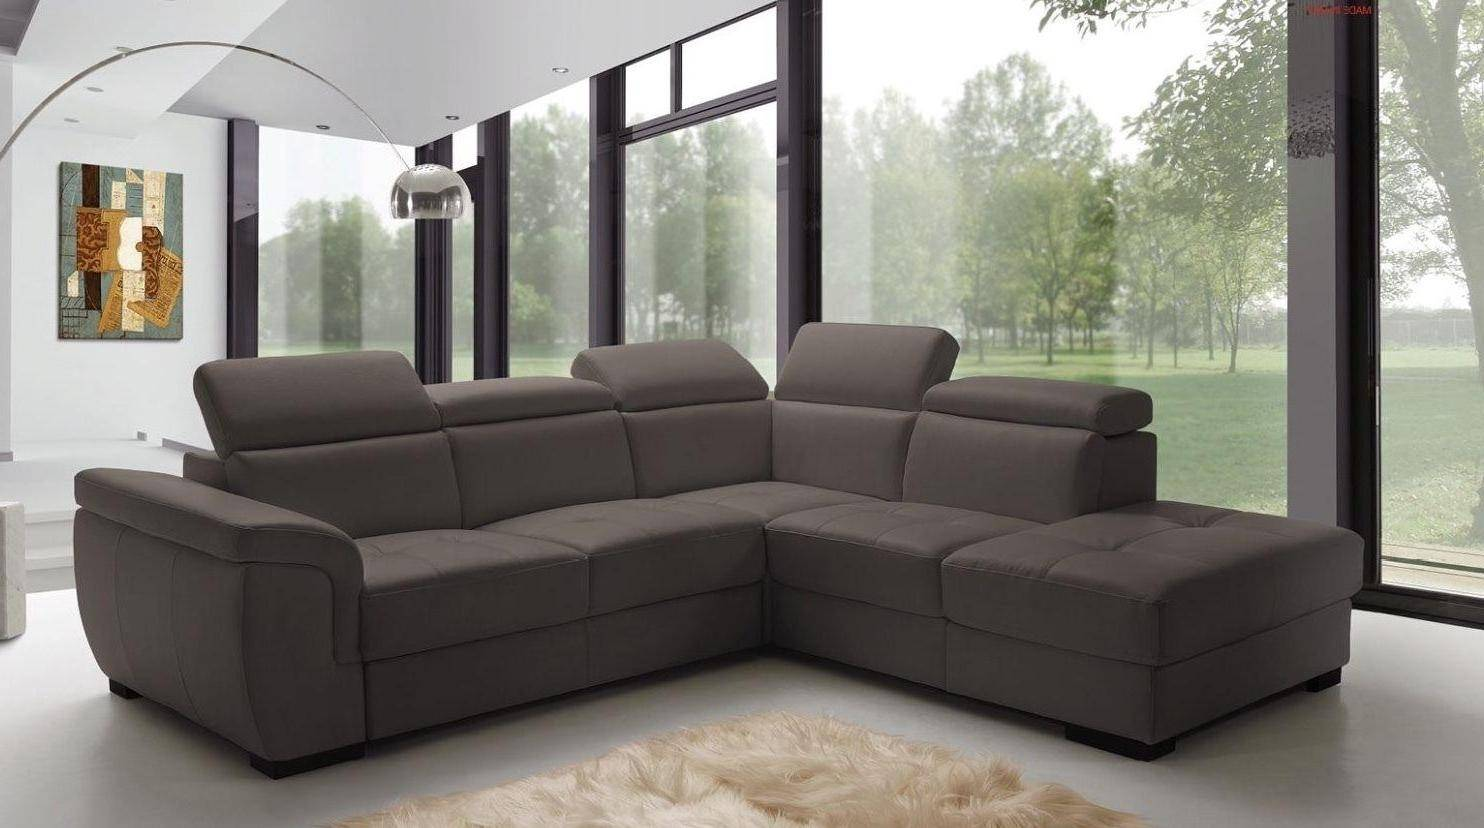 freedom zee sofa bed review